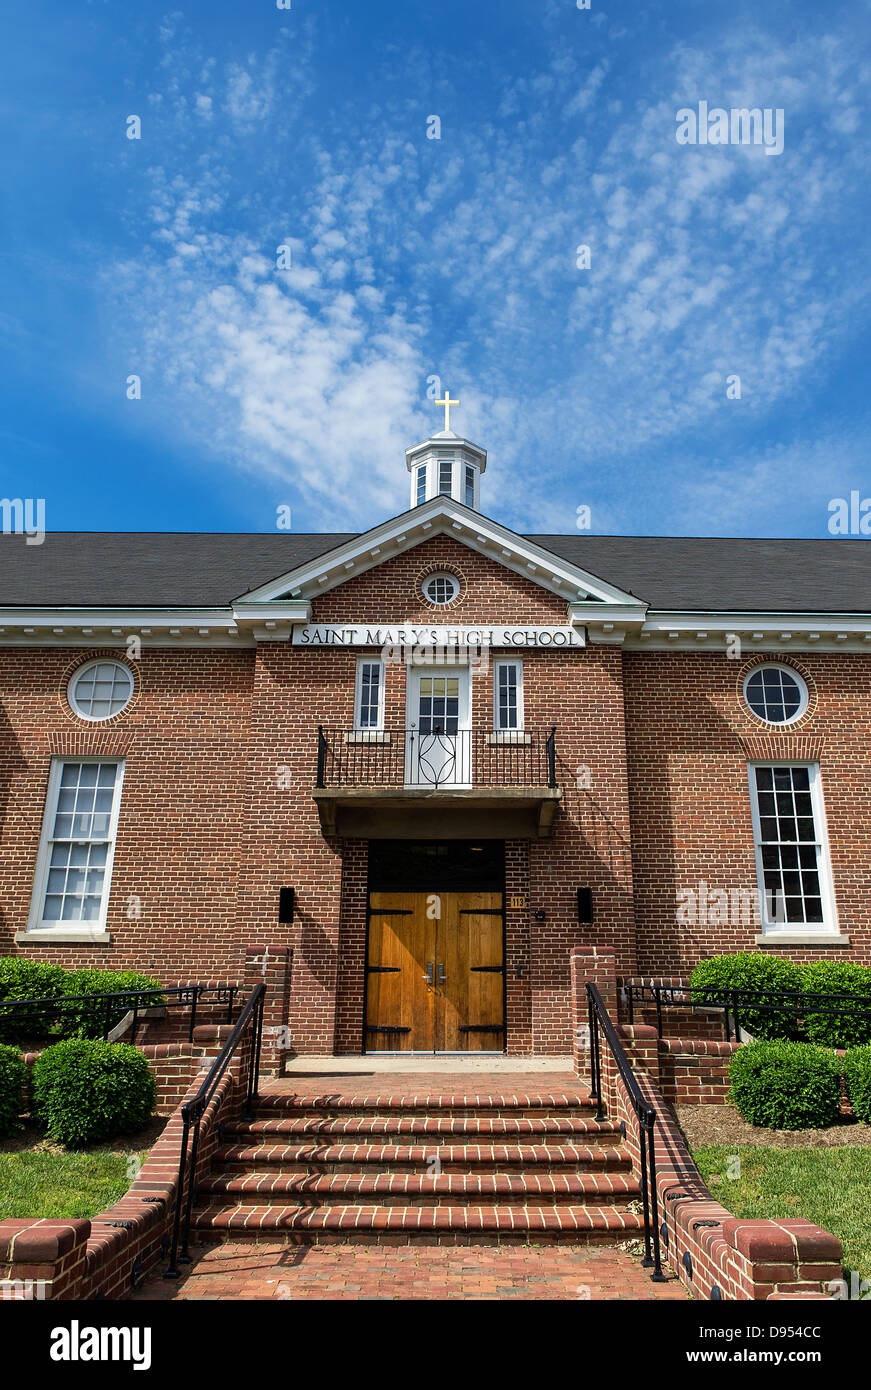 Saint Mary's High School, Annapolis, Maryland, USA Photo Stock